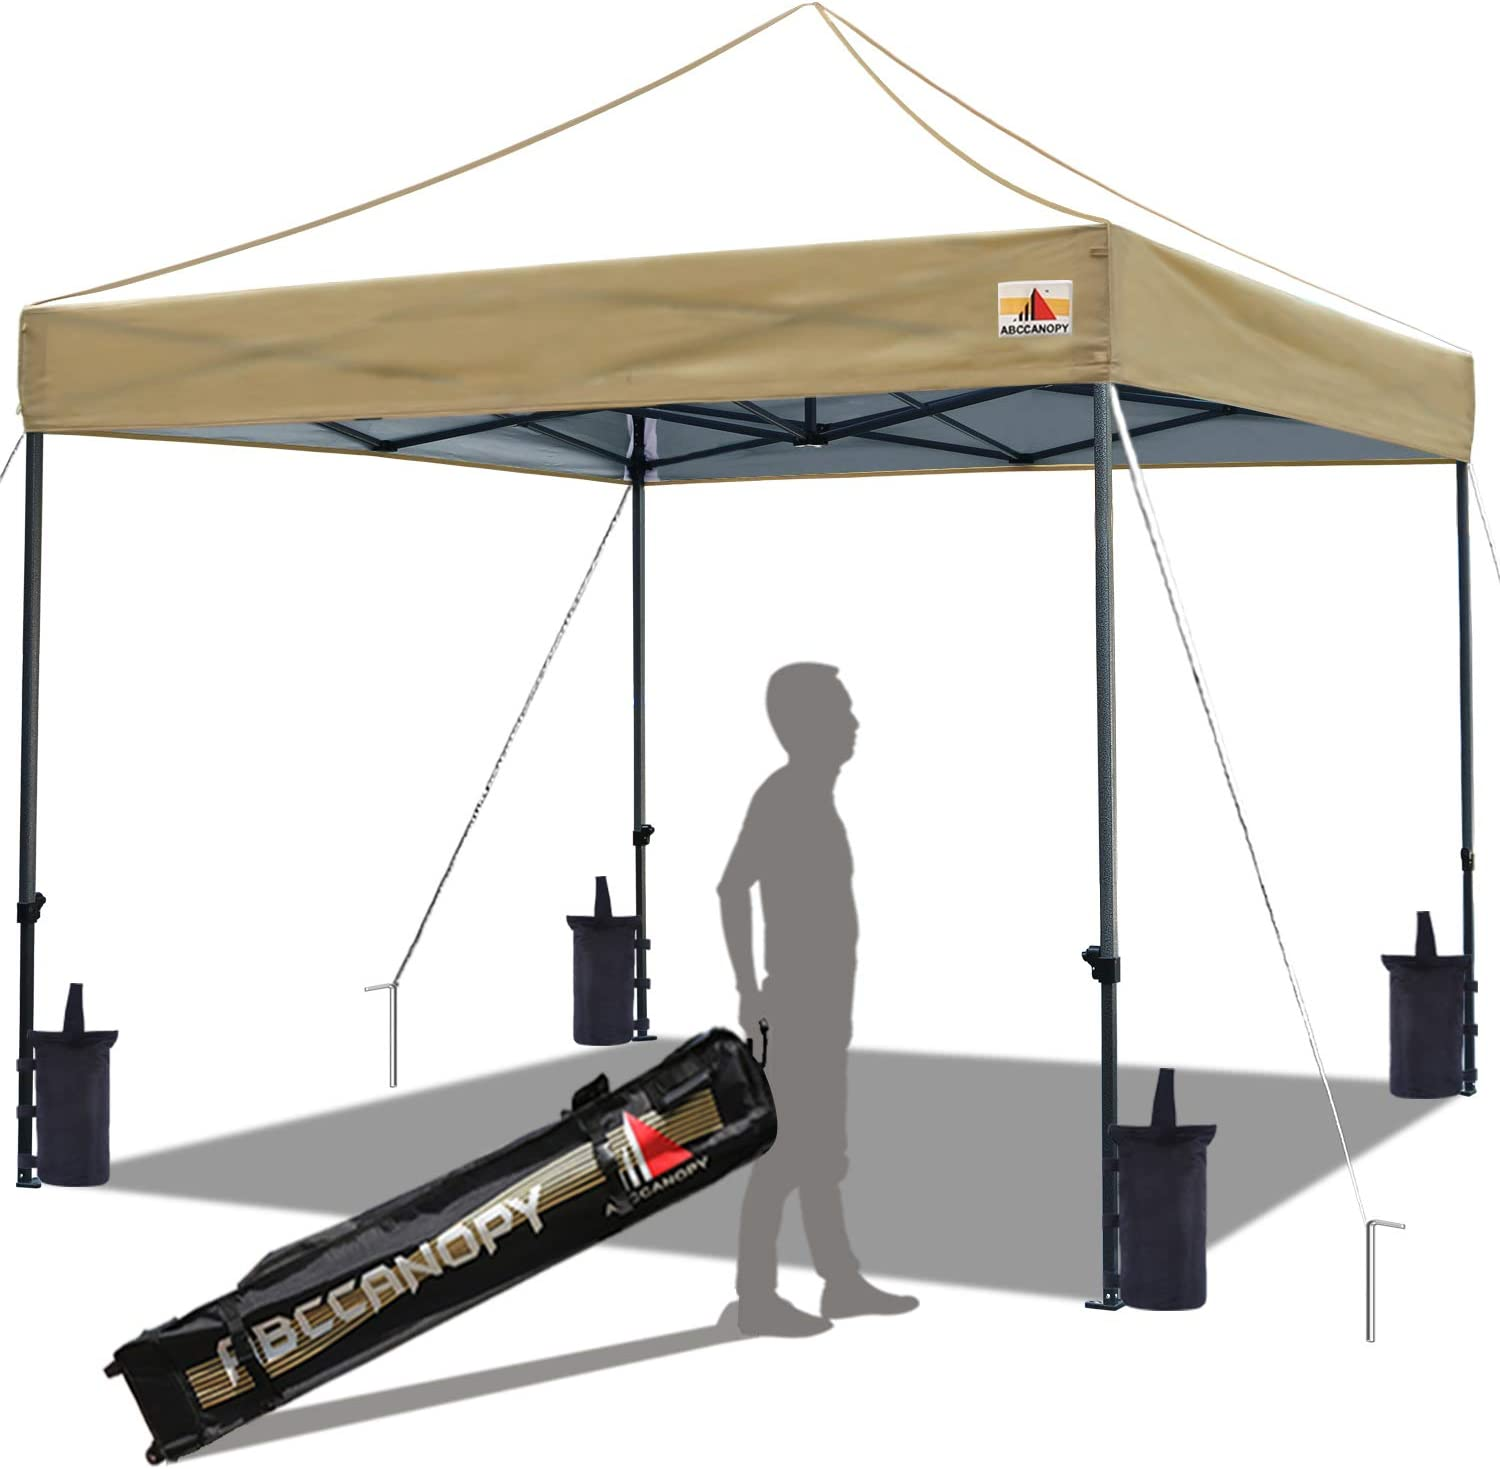 ABCCANOPY 10×10 Canopy Tent Outdoor Canopy Pop up Canopy Commercial Instant Shelter with Wheeled Carry Bag, Bonus 4 Canopy Sand Bags